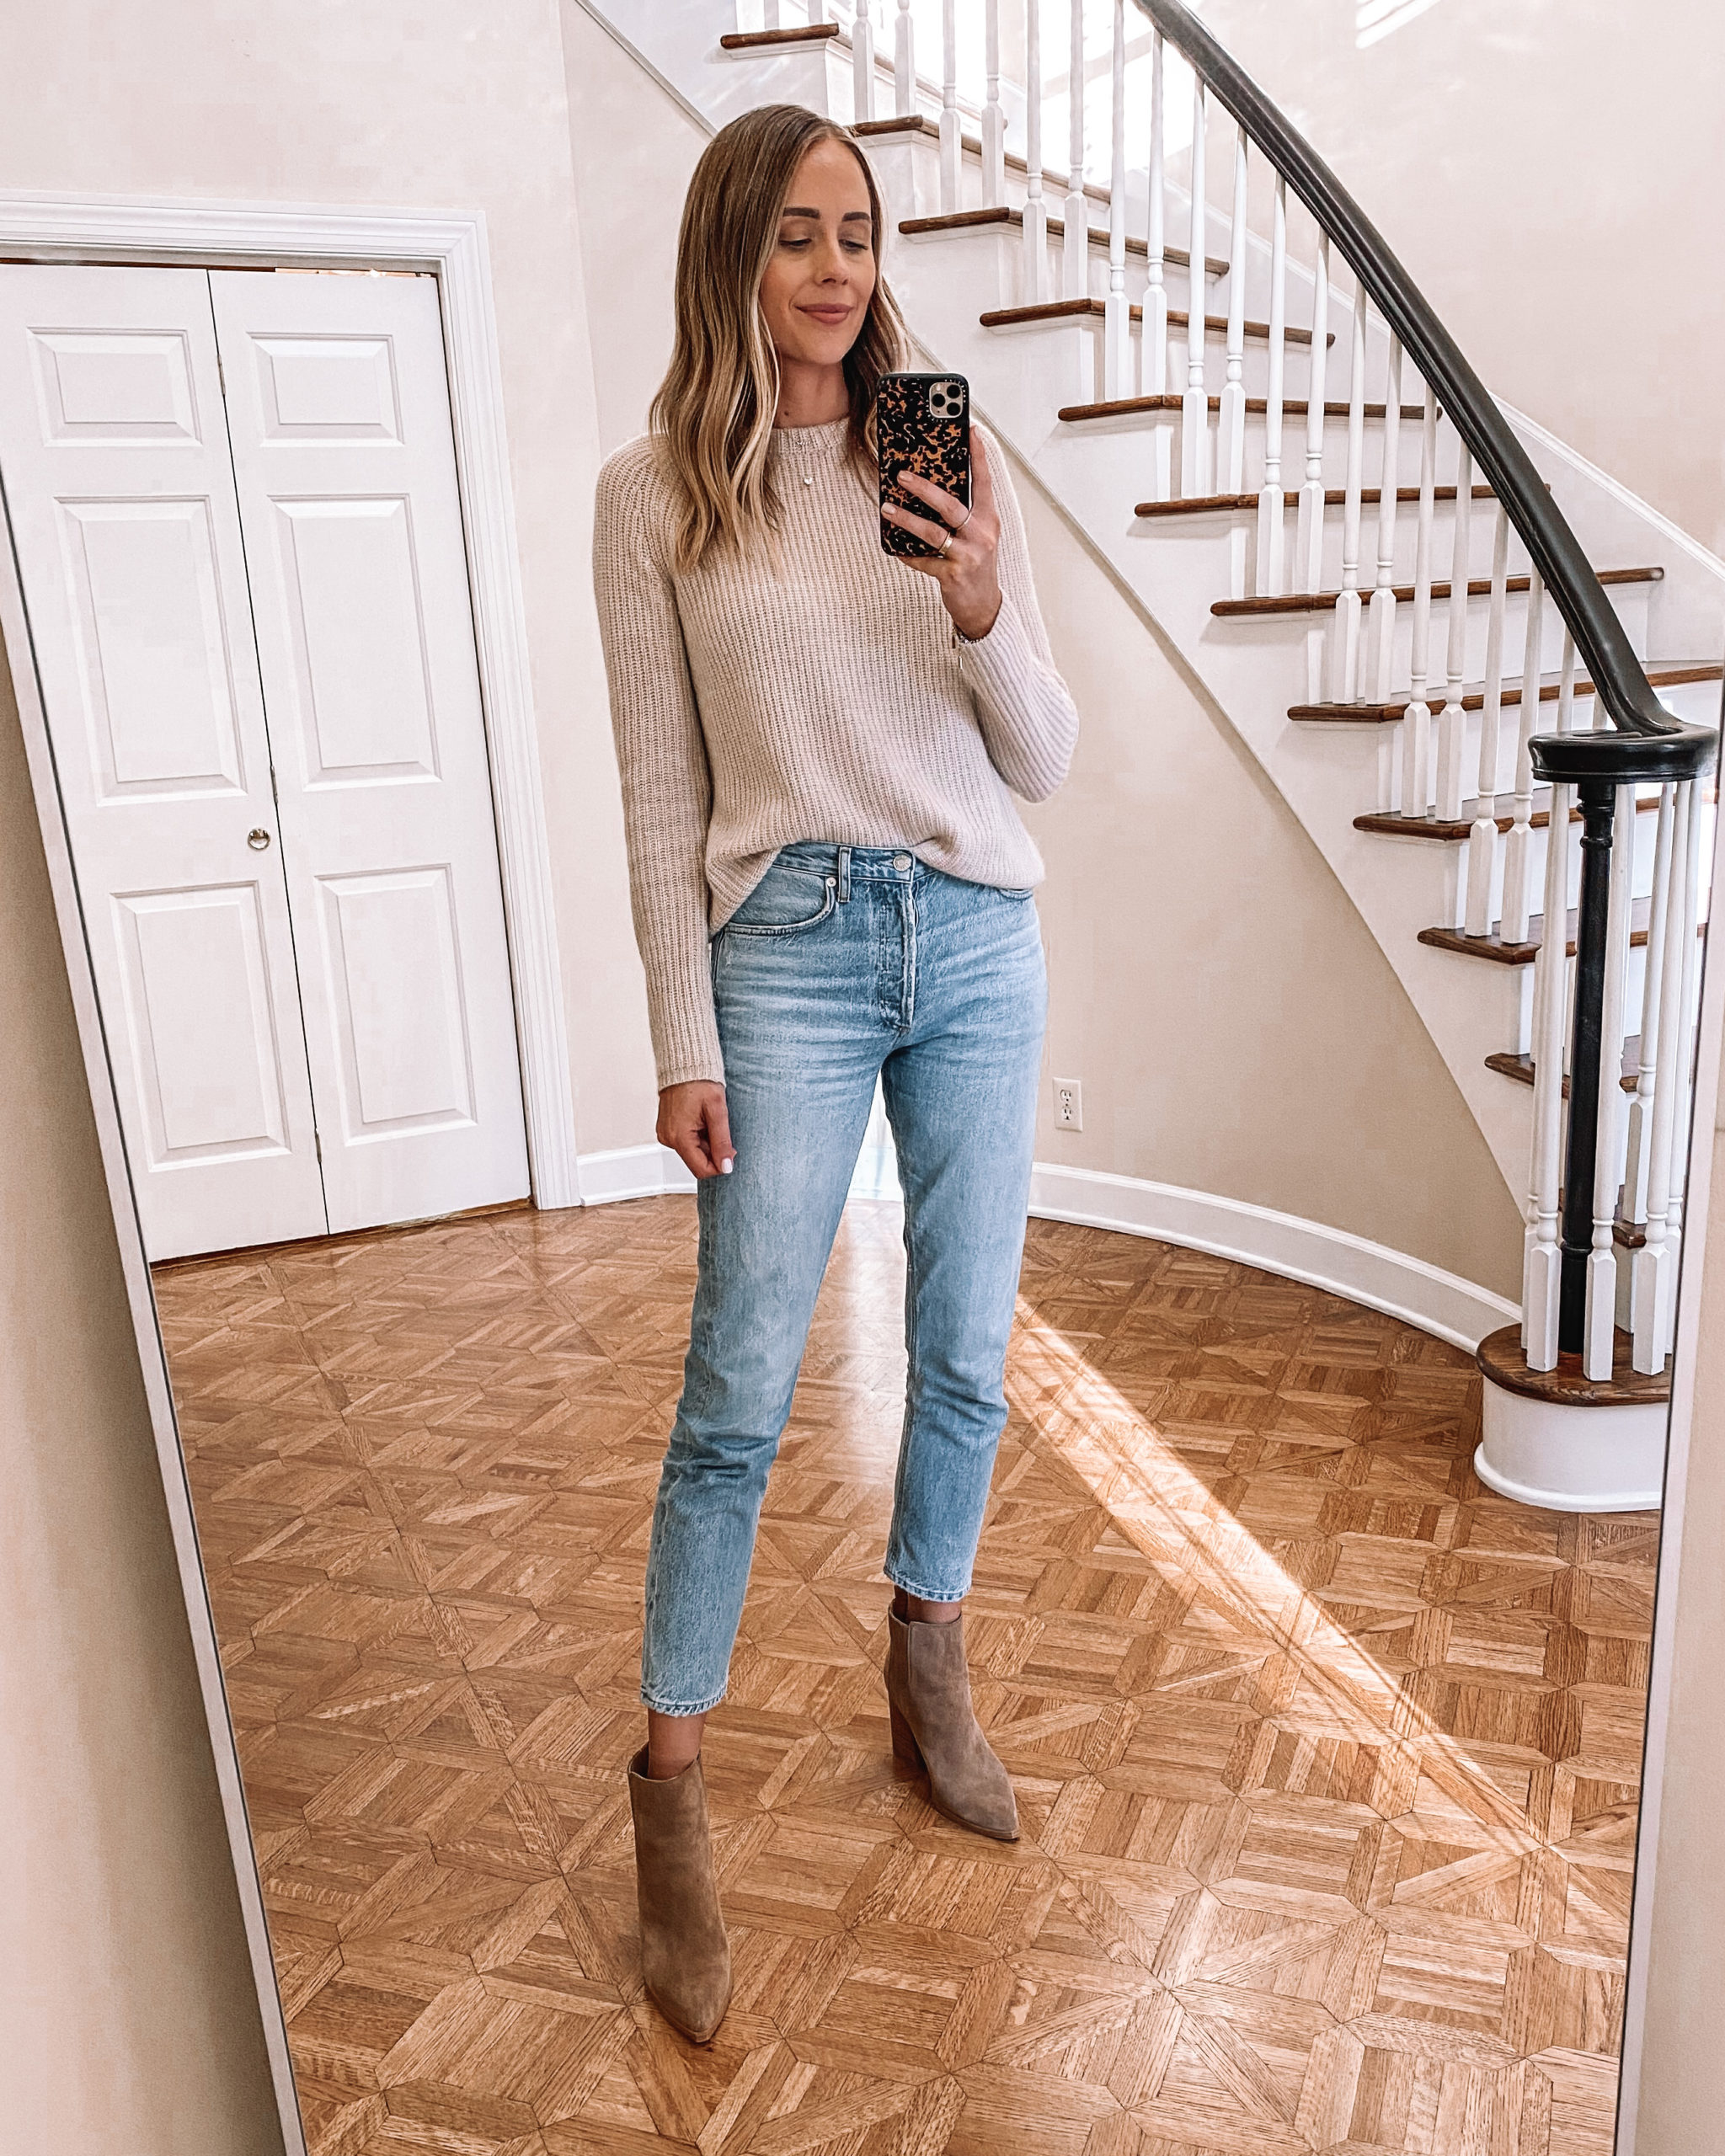 Fashion Jackson Wearing Jenni Kayne Cashmere Sweater Levis Jeans Tan Suede Booties